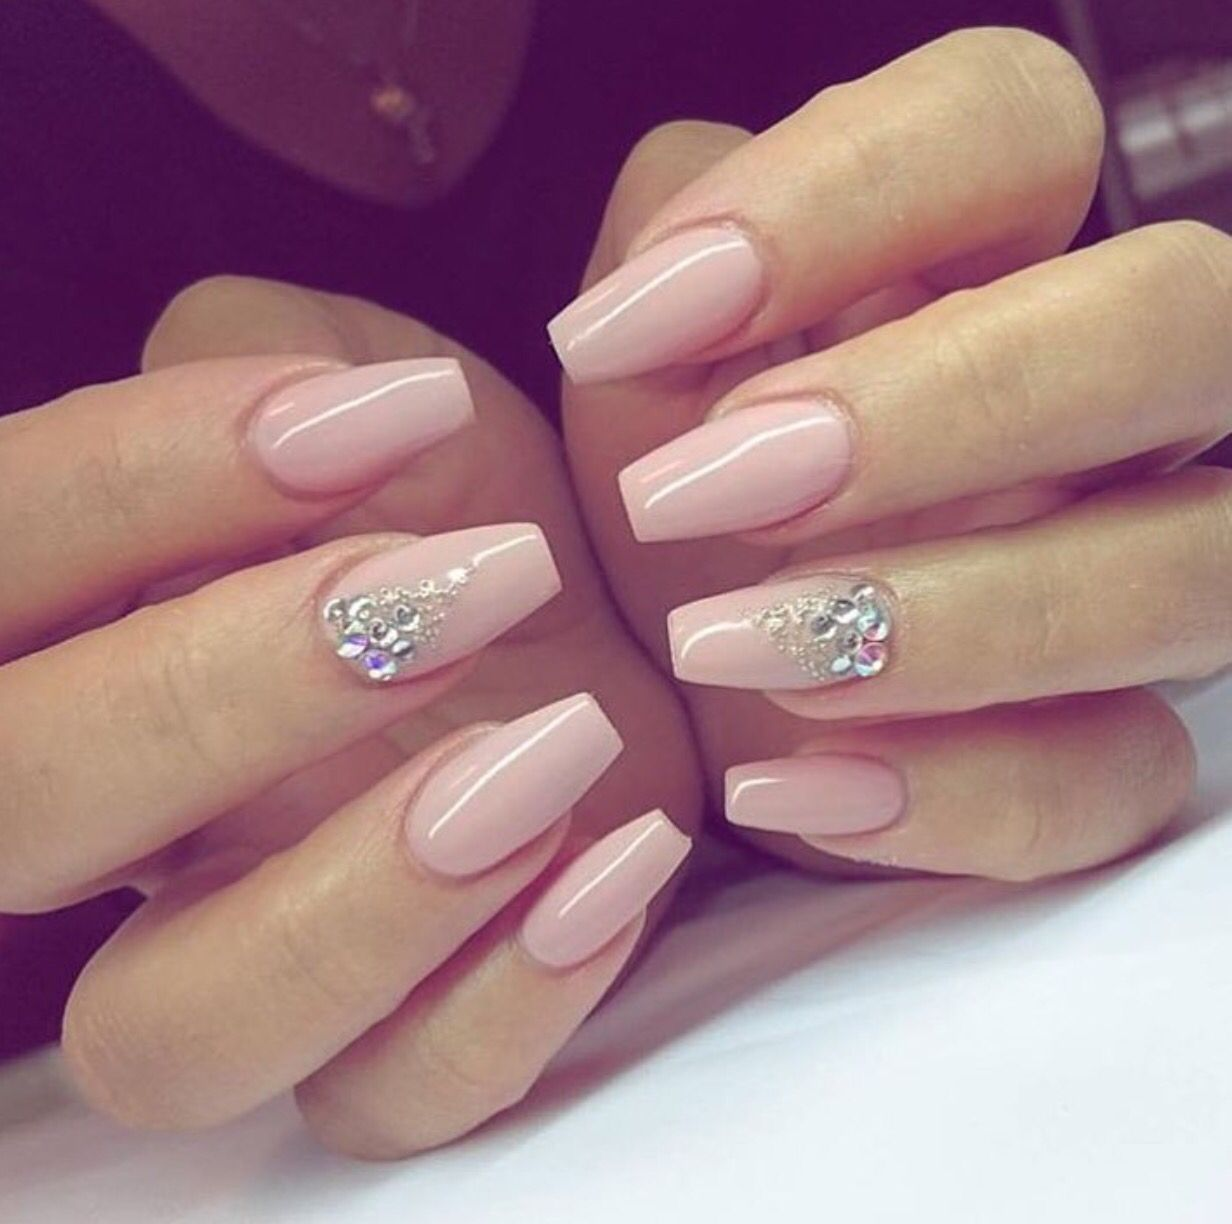 Simple pink nails | Acrylic nails | Pinterest | Pink nails ...